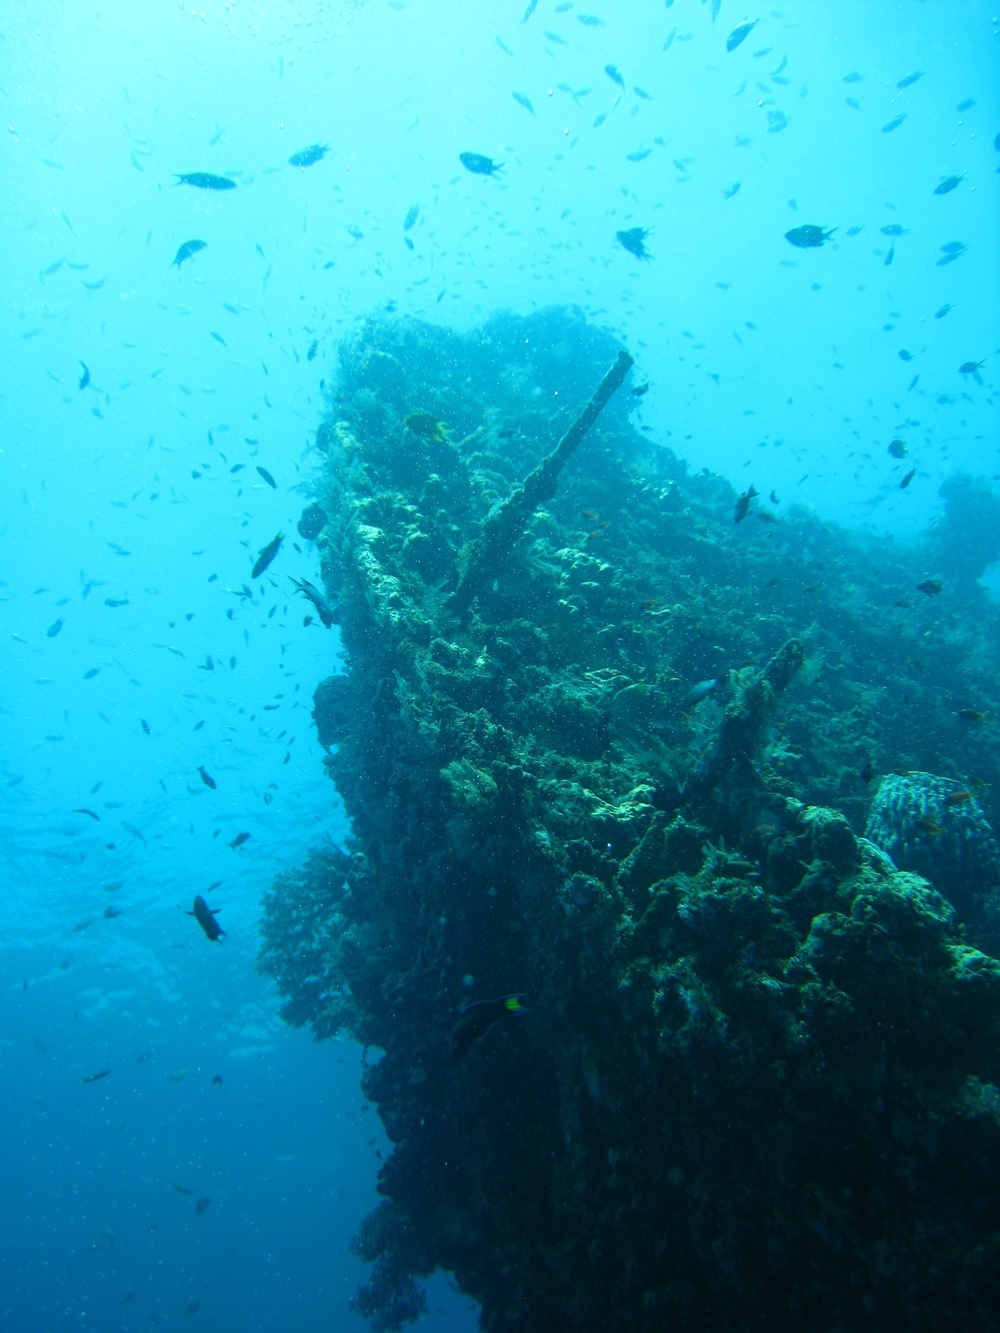 The superstructure of the Liberty, surrounded in the ample sea life.